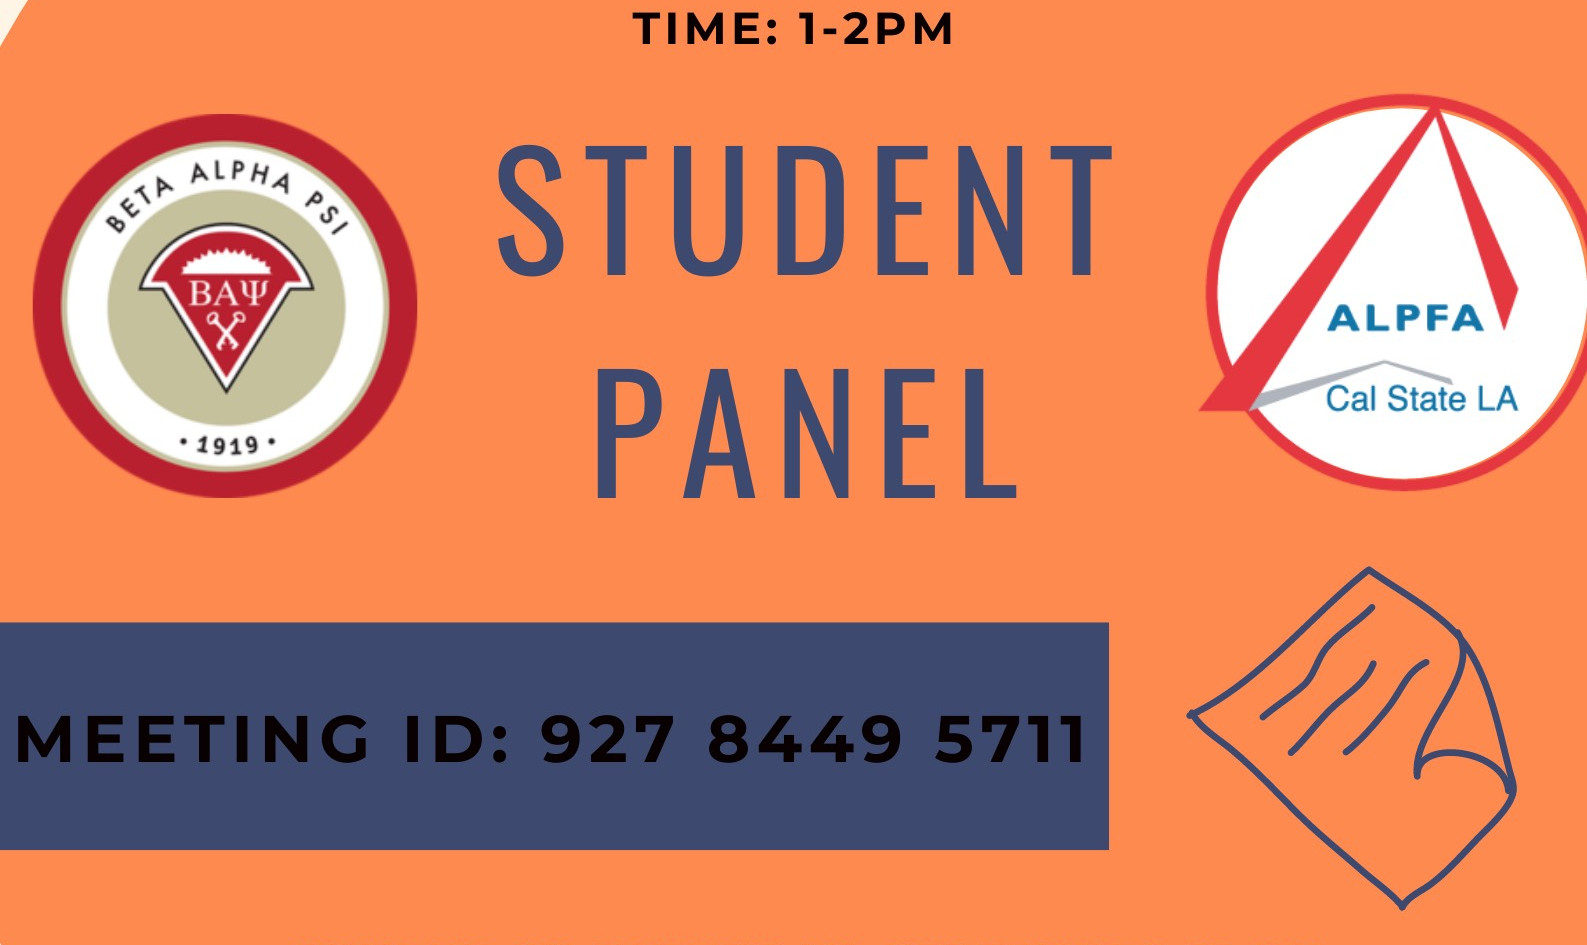 Q&A WITH STUDENT PANELISTS